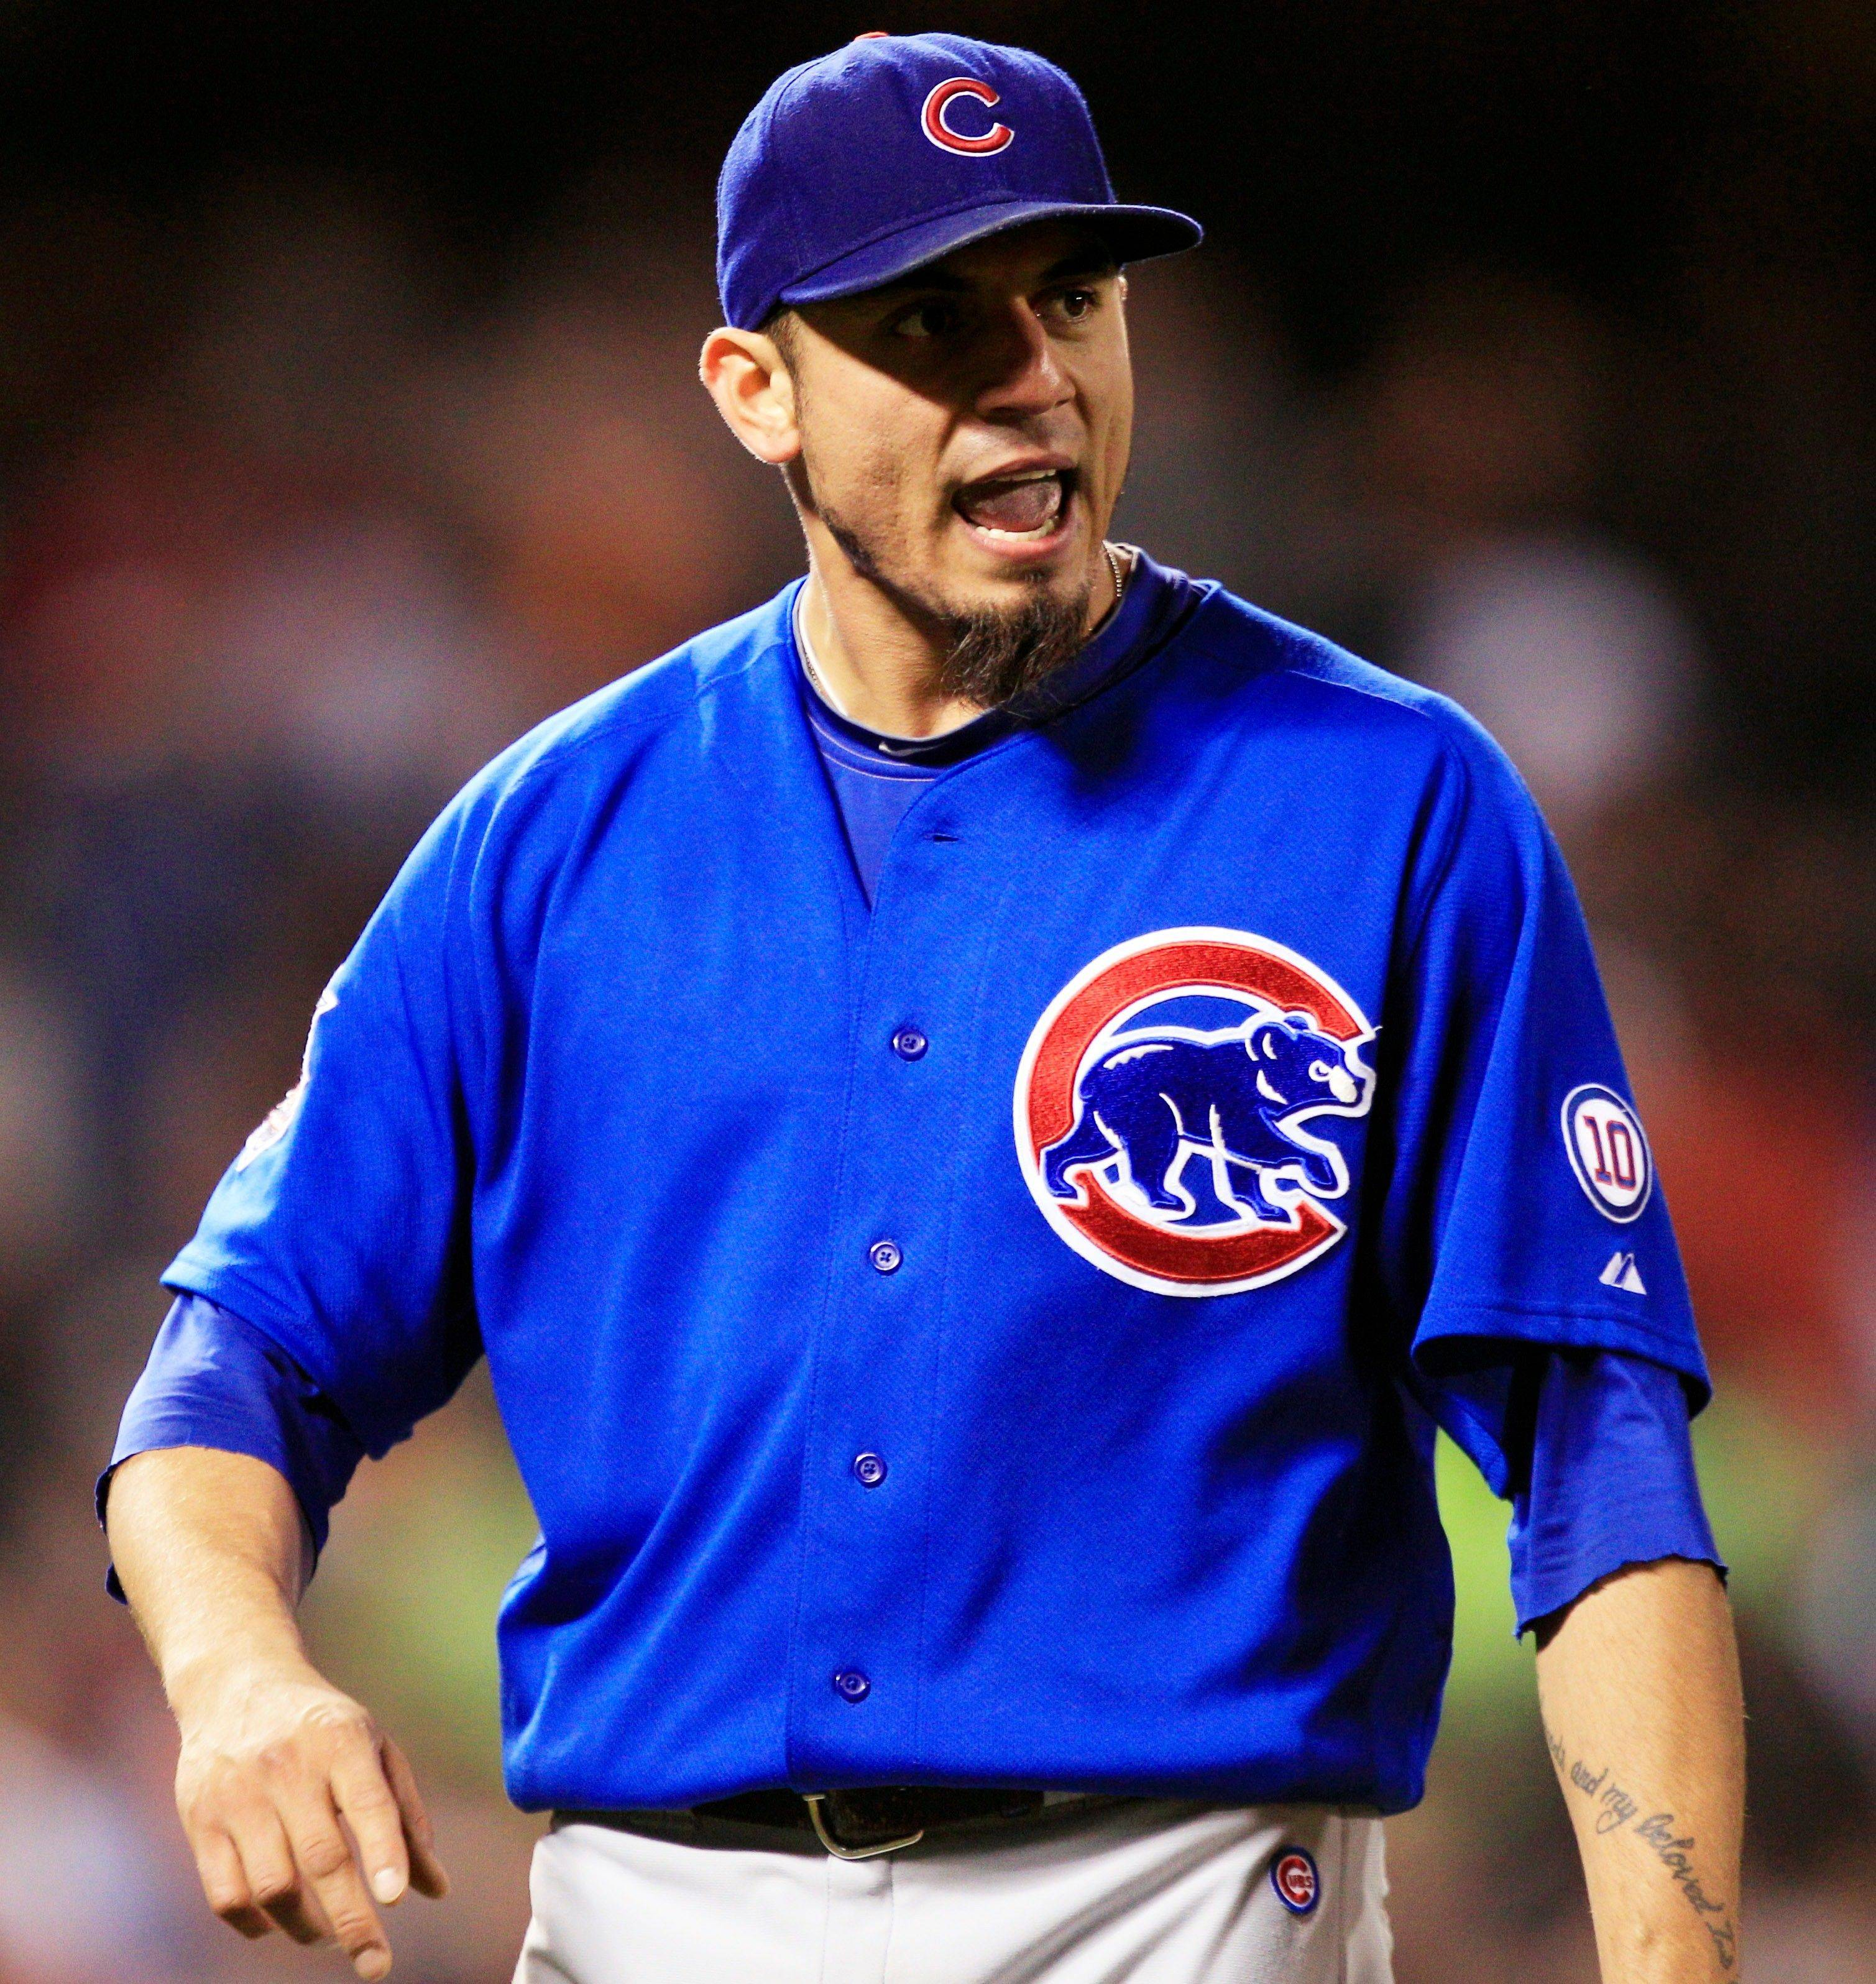 Despite a 6-10 record, Matt Garza could be the ace of the Cubs' pitching staff next season.